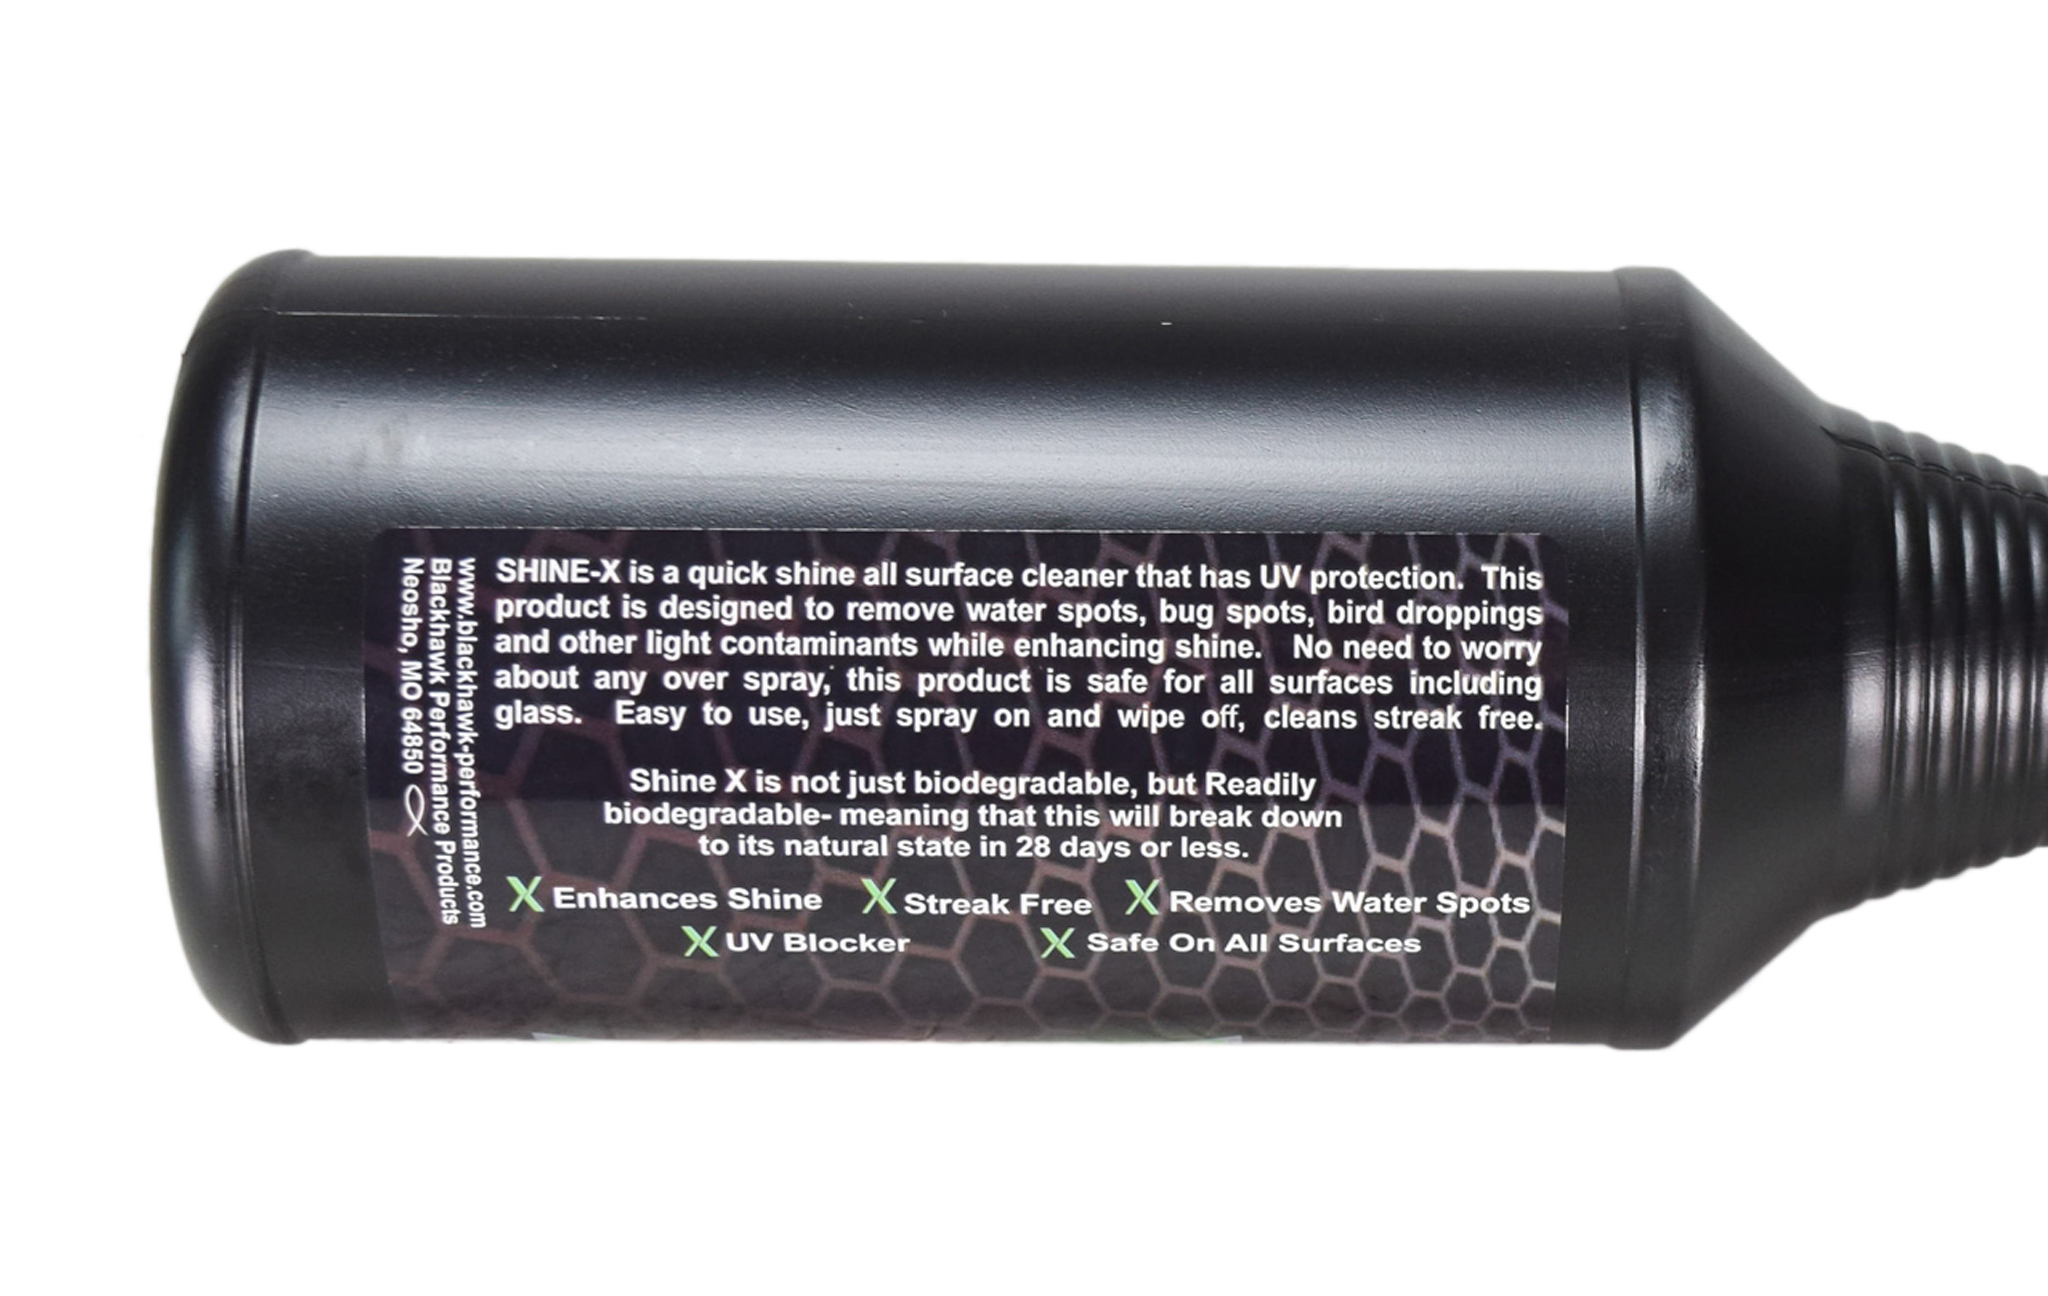 Blackhawk-Lubricants-Shine-X-Multi-Surface-Cleaner-Water-Spot-Remover-and-UV-Protectant-image-5